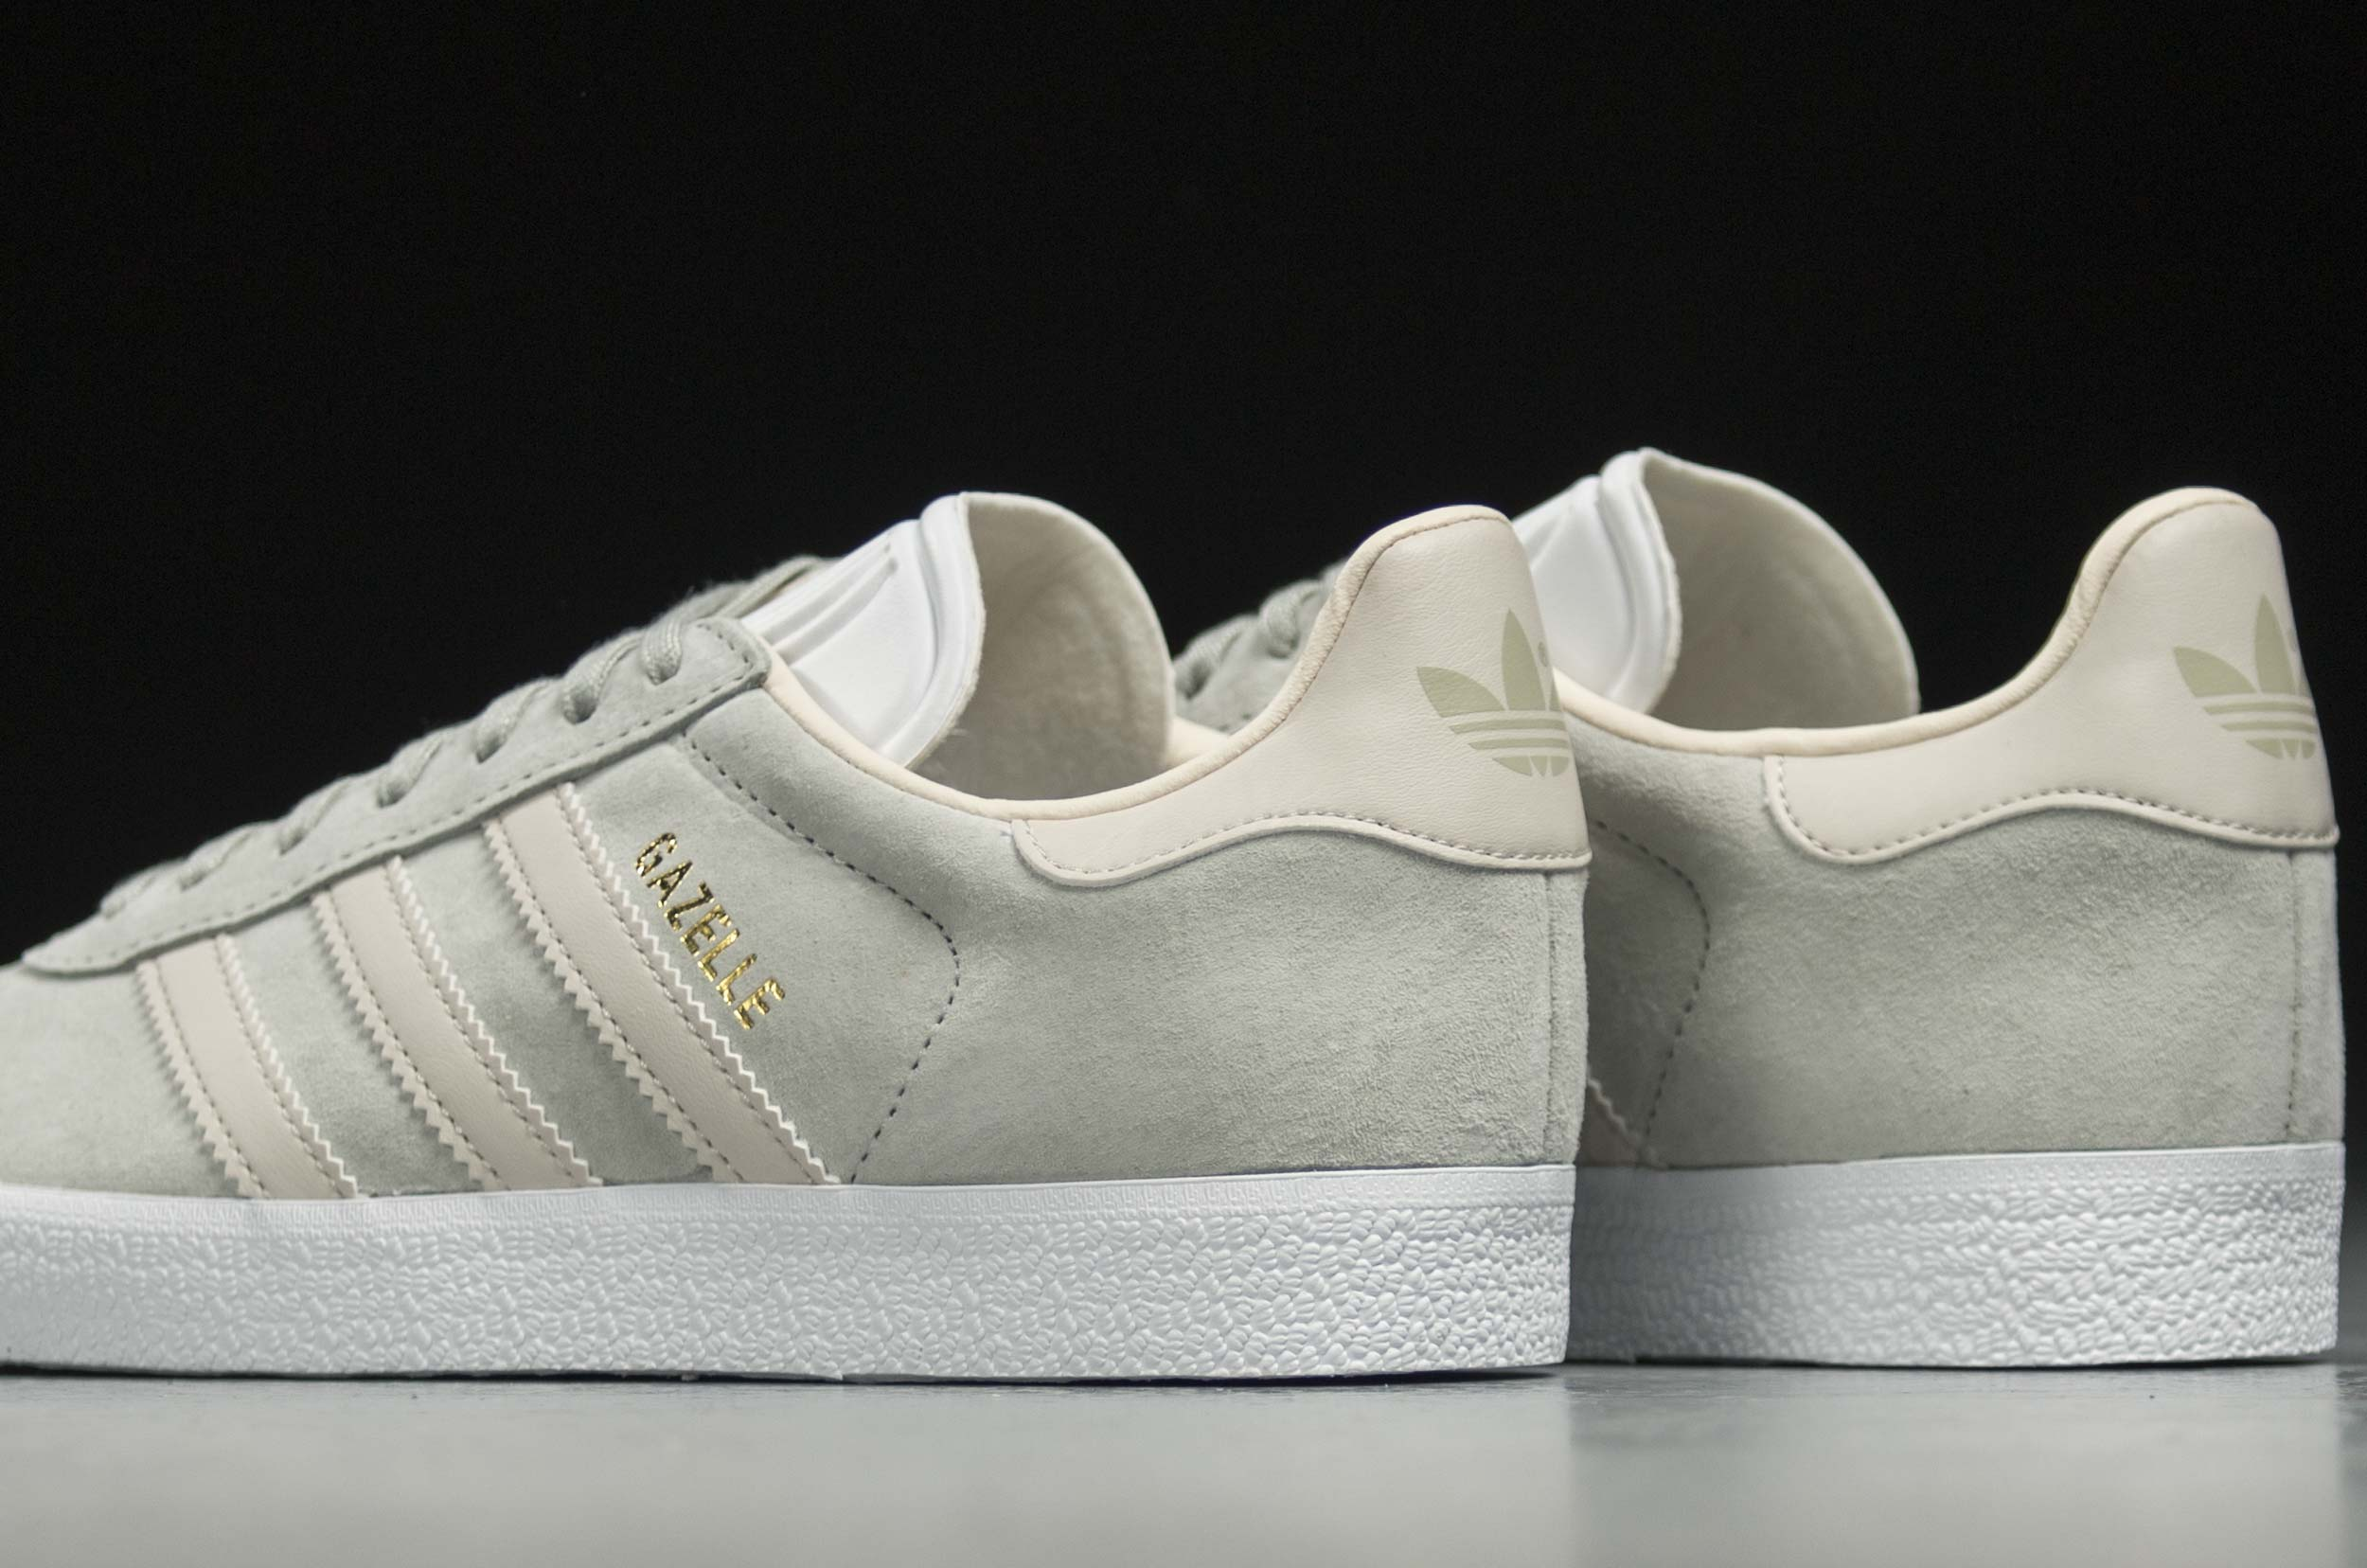 adidas Originals GAZELLE CG6065 Οινοπνευματί.